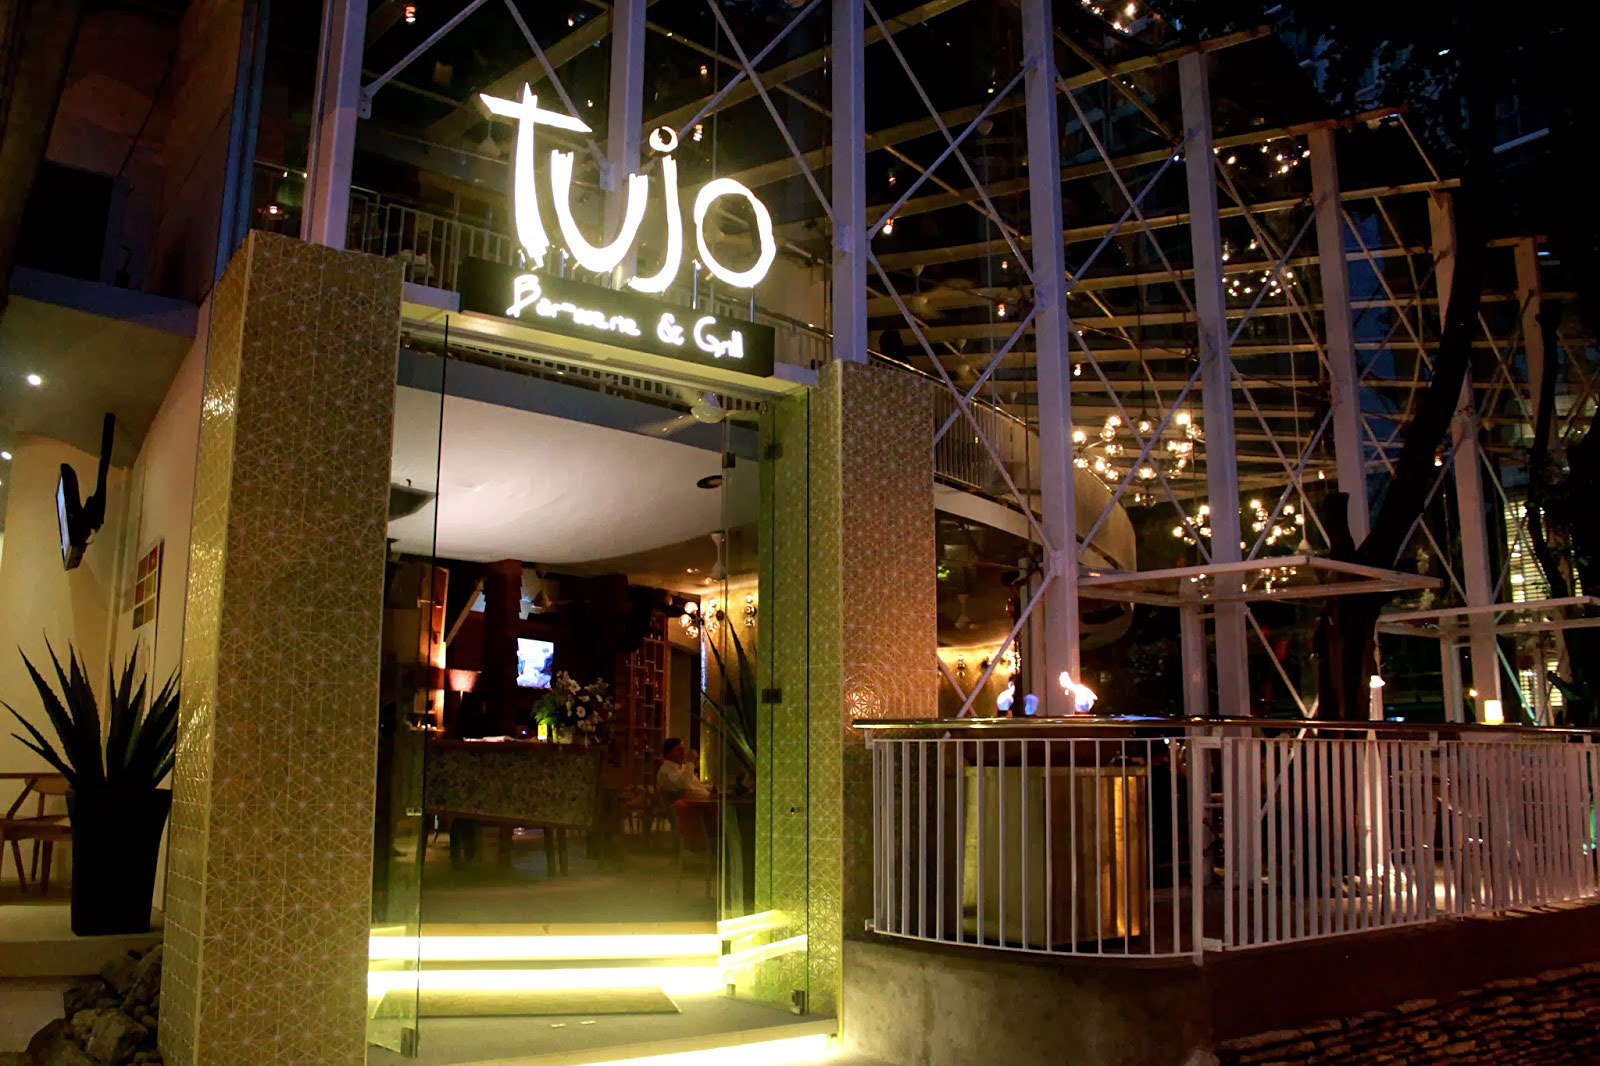 Tujo Bar-sserie & Grill – Eat, Drink and Play in the Heart of Kuala Lumpur 7